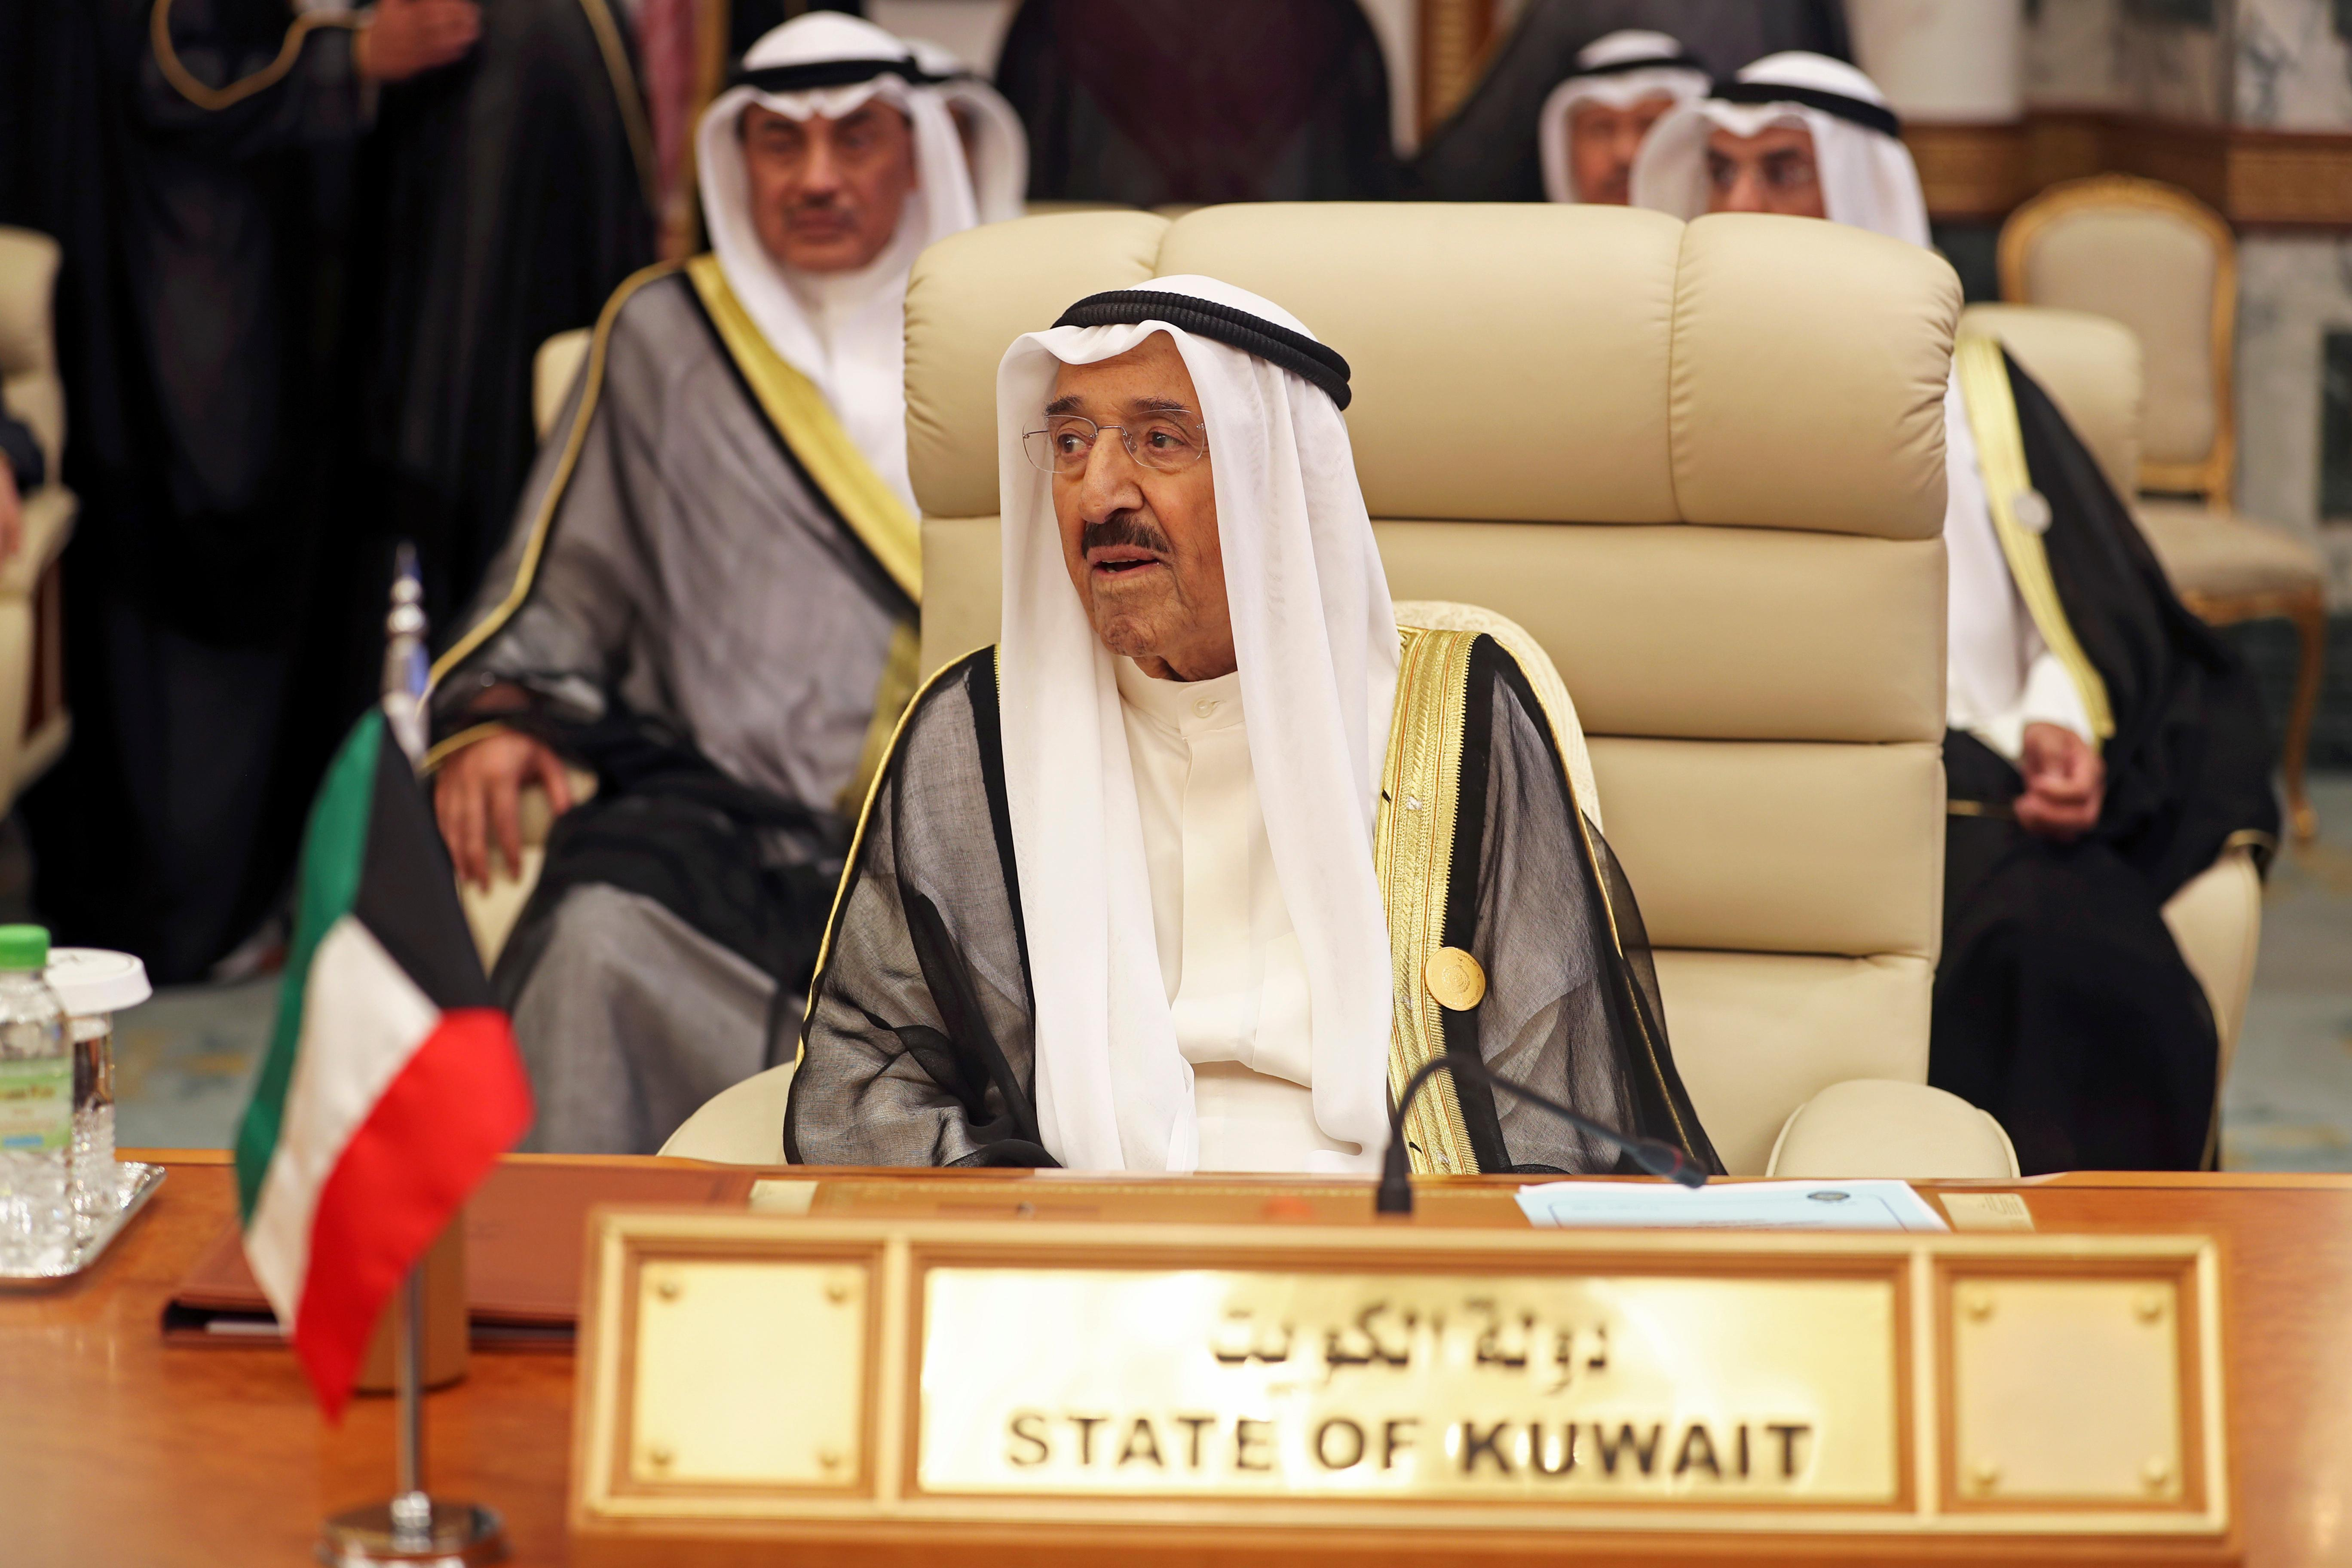 Kuwait's Emir has recovered after health setback: state news agency